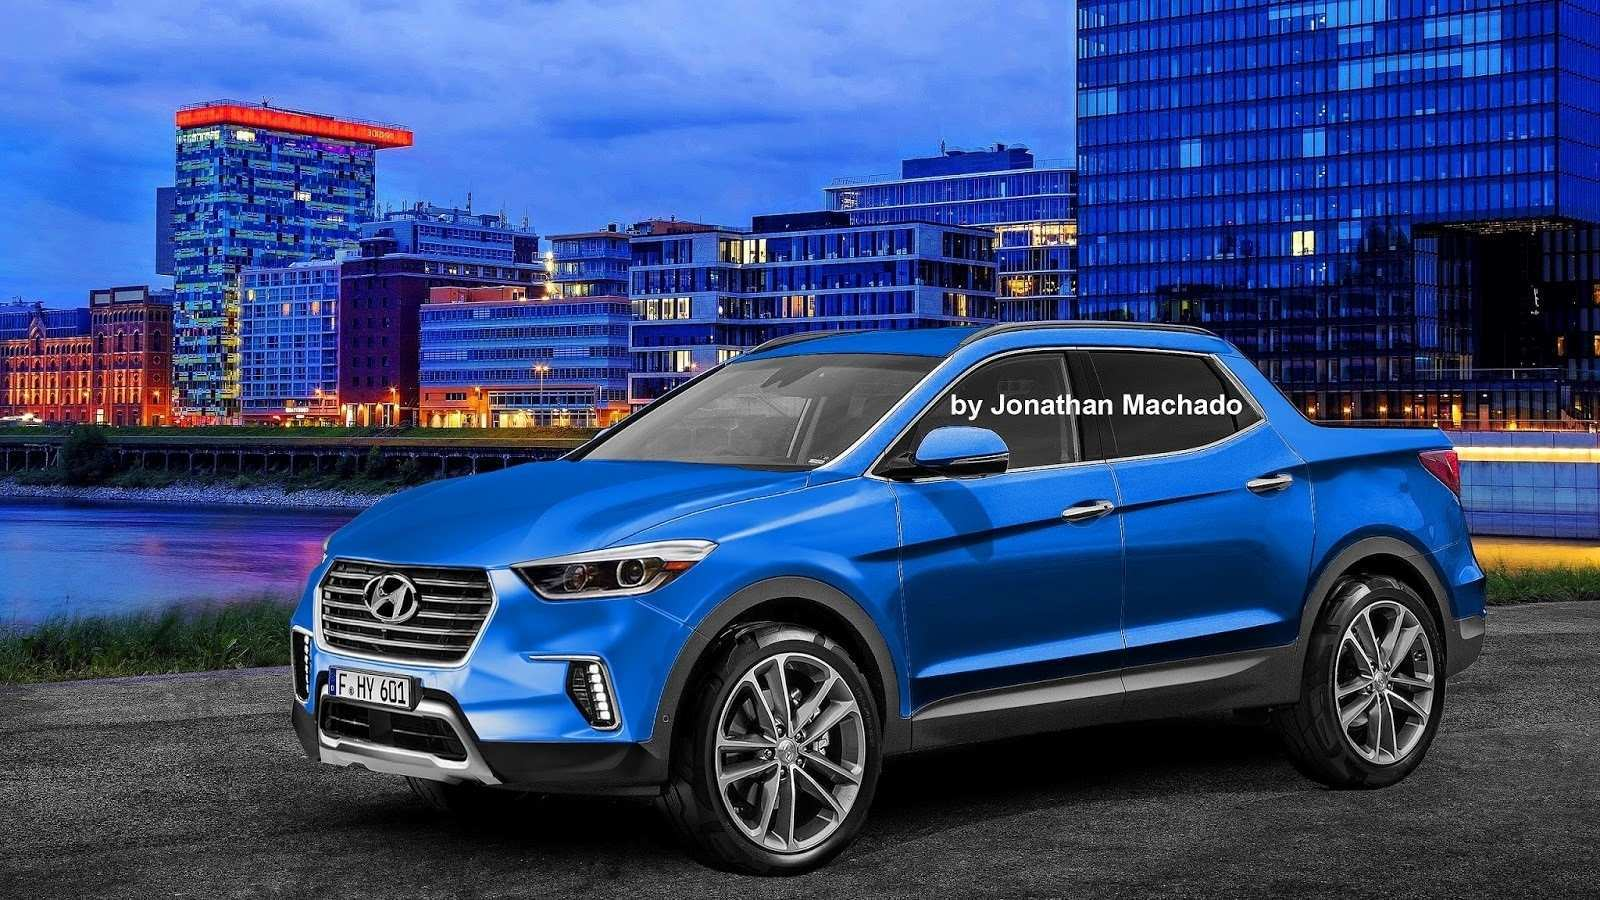 27 Concept of Hyundai Pickup 2020 Redesign and Concept for Hyundai Pickup 2020